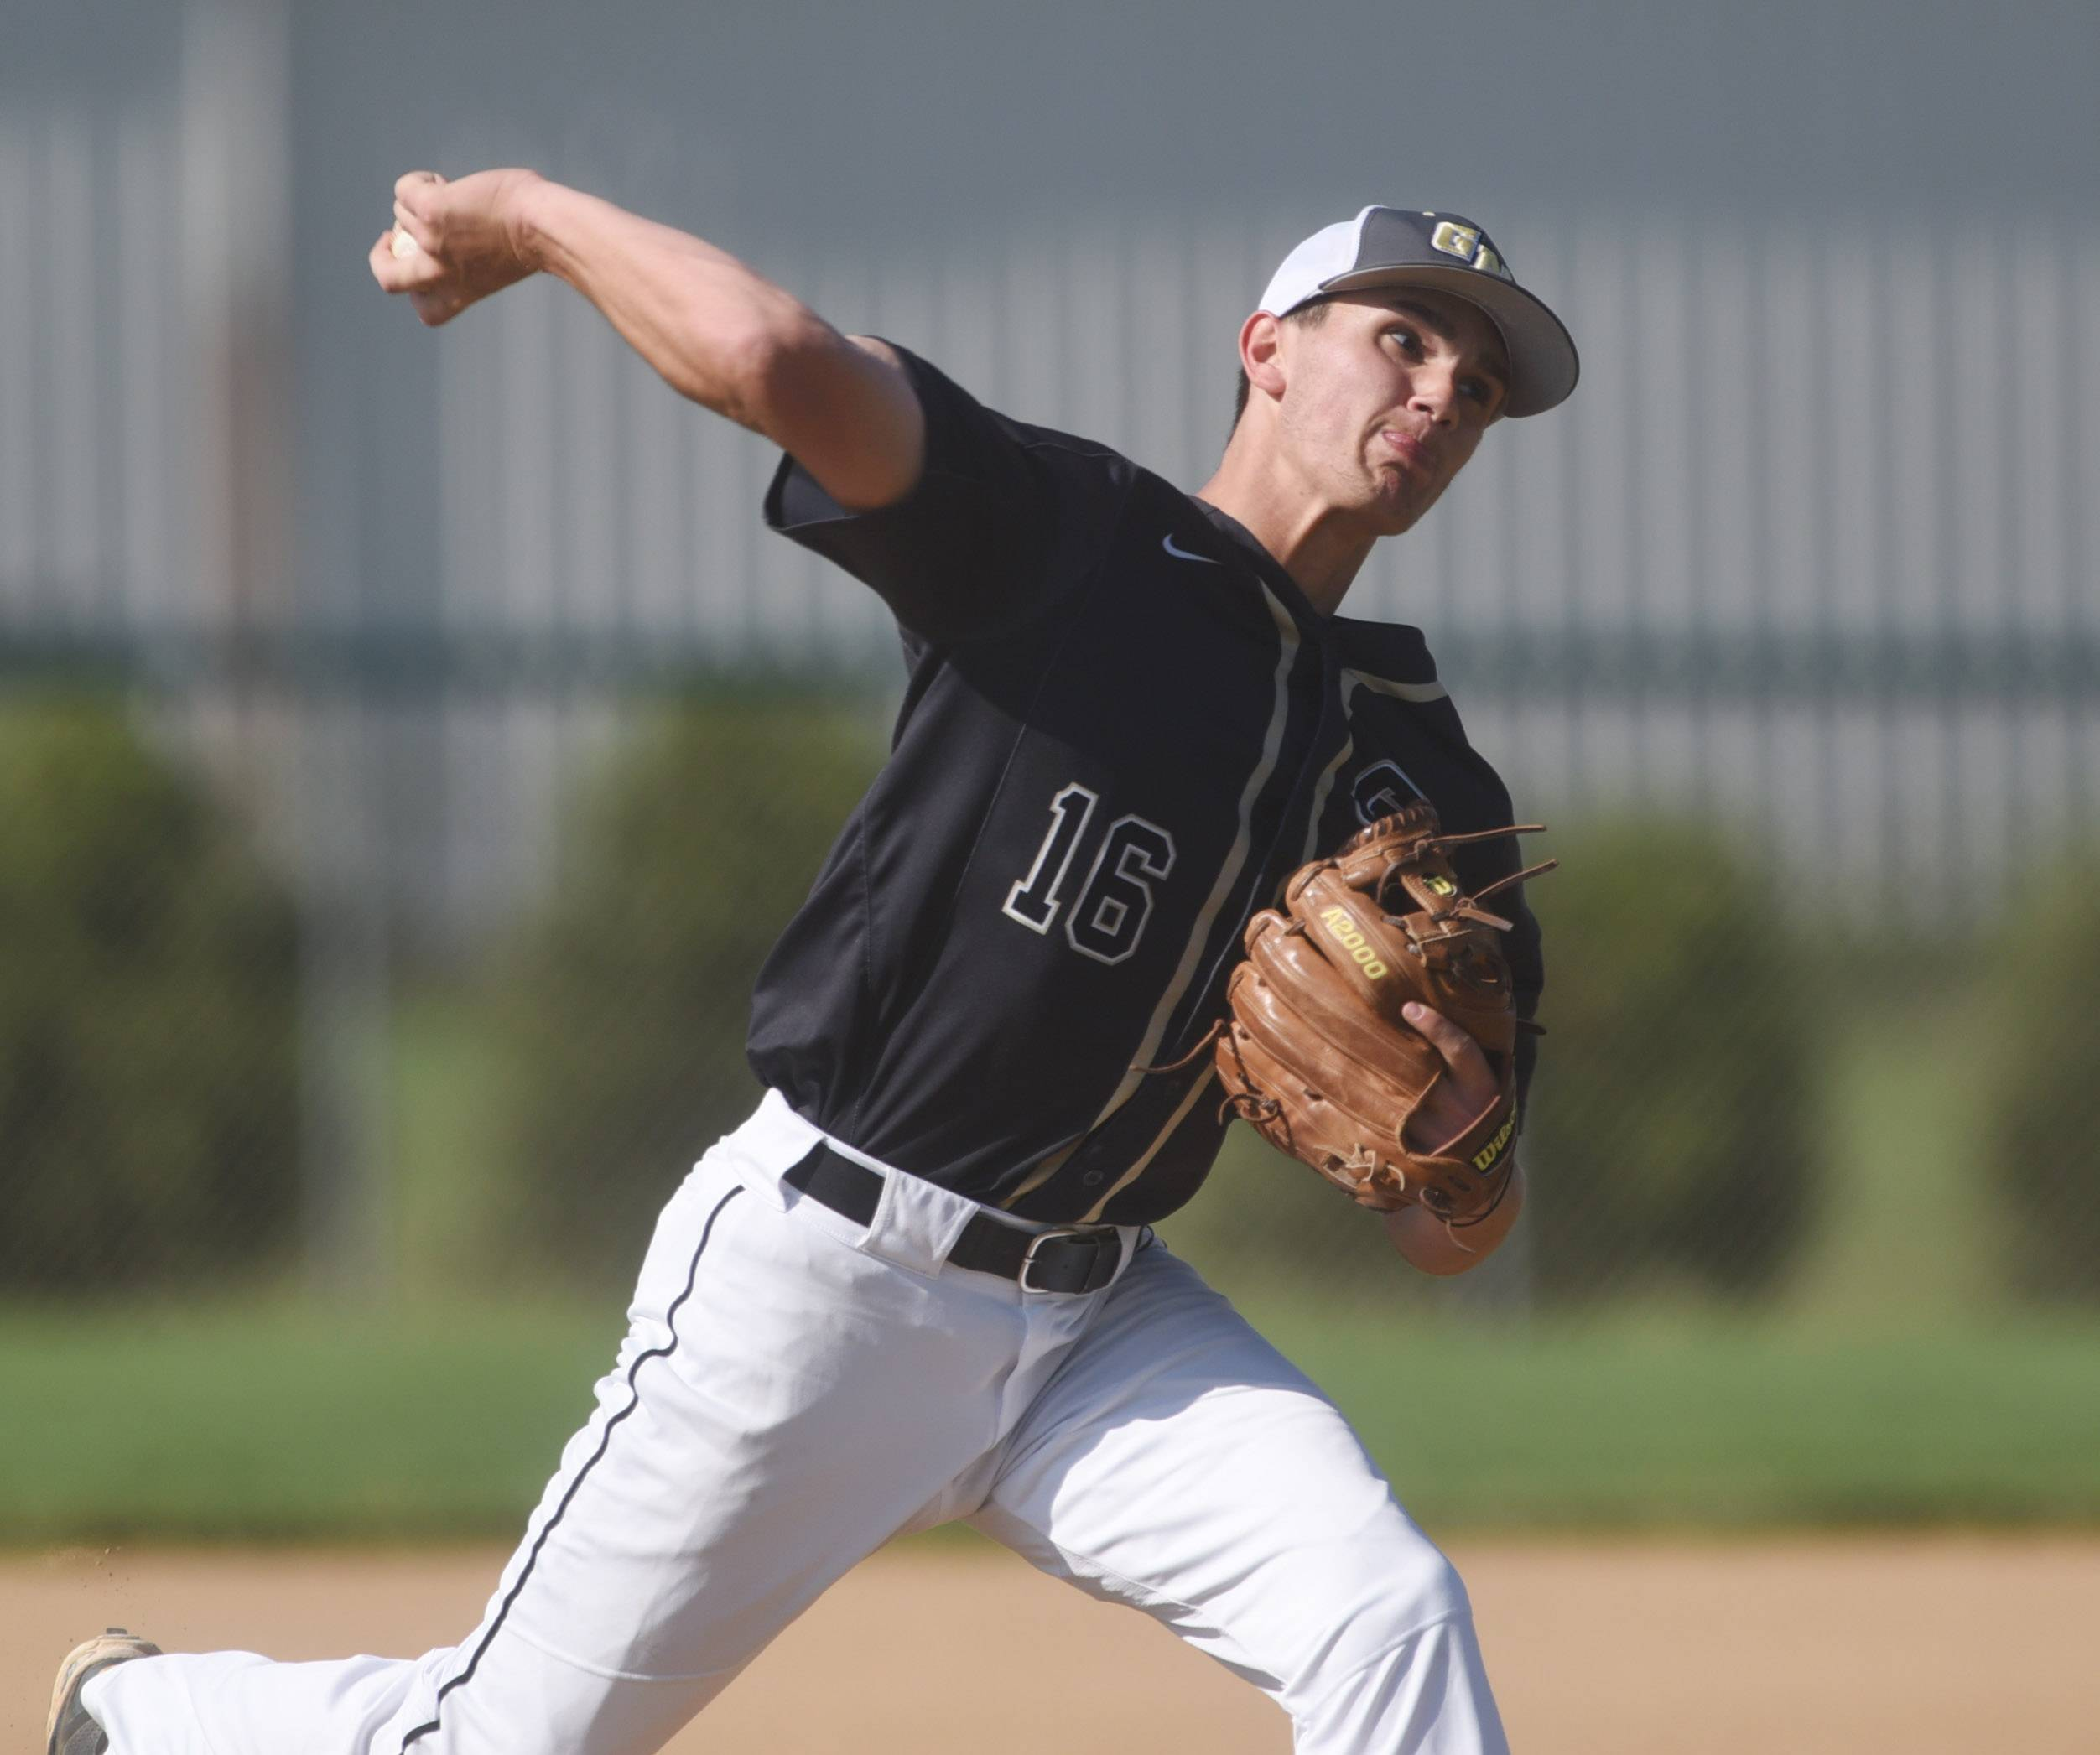 Baseball: Grayslake North happy to take this one, for the team